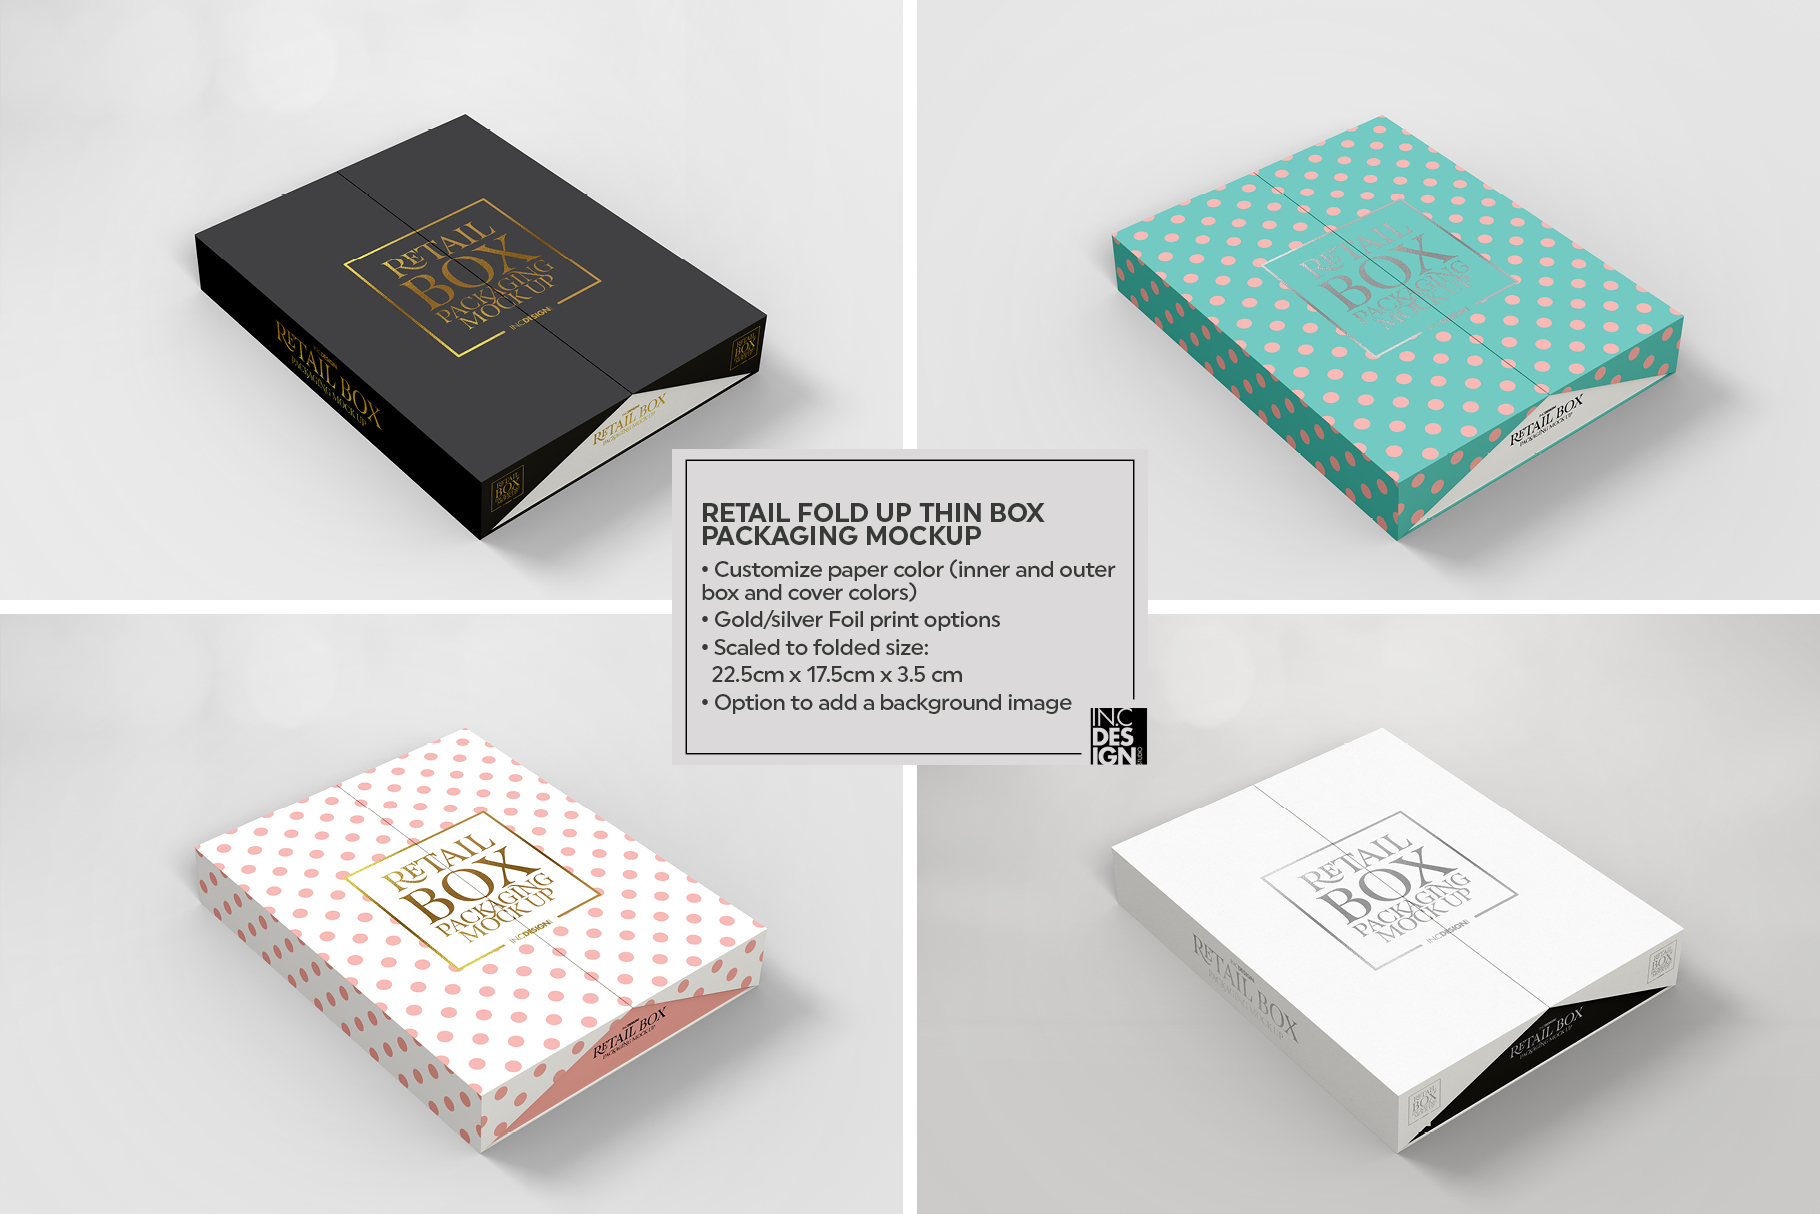 Fold Up Retail Thin Box Packaging Mockup example image 4